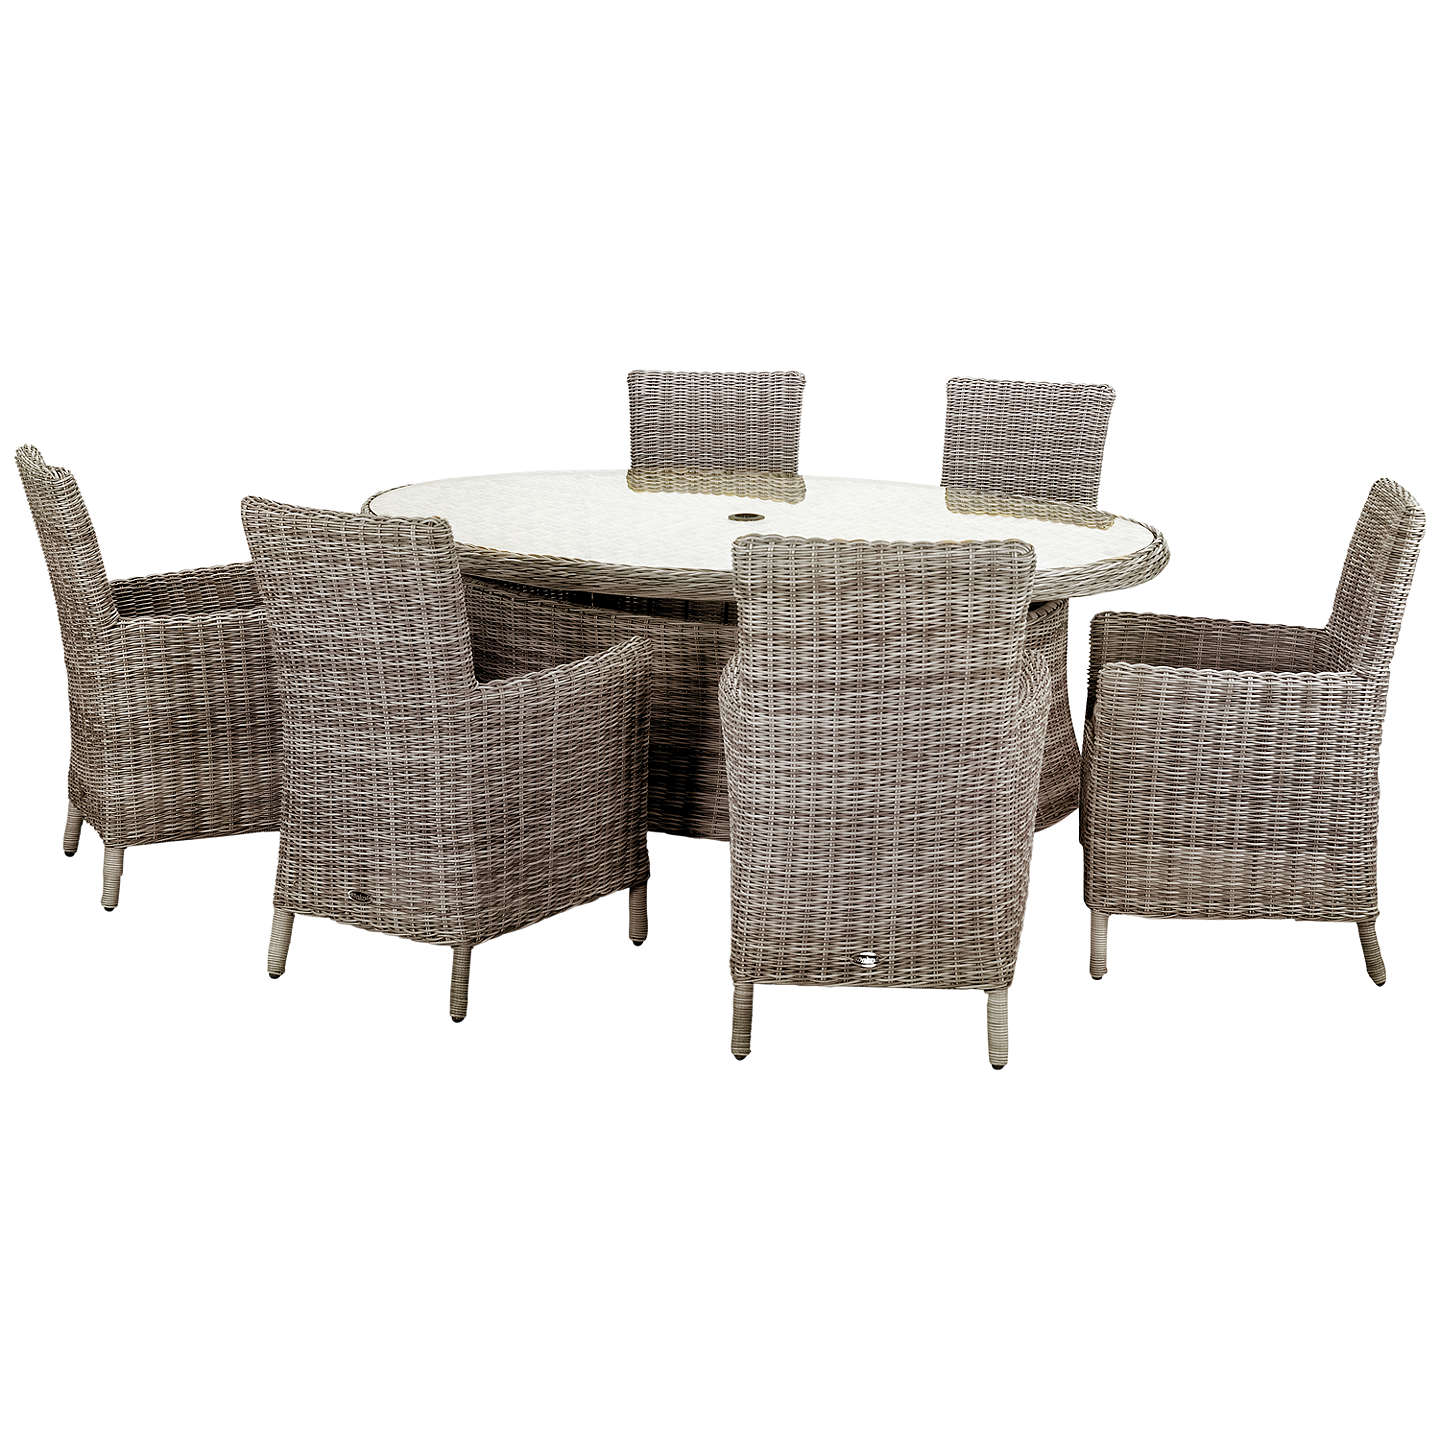 Royalcraft Wentworth 6-Seater Garden Dining Table And